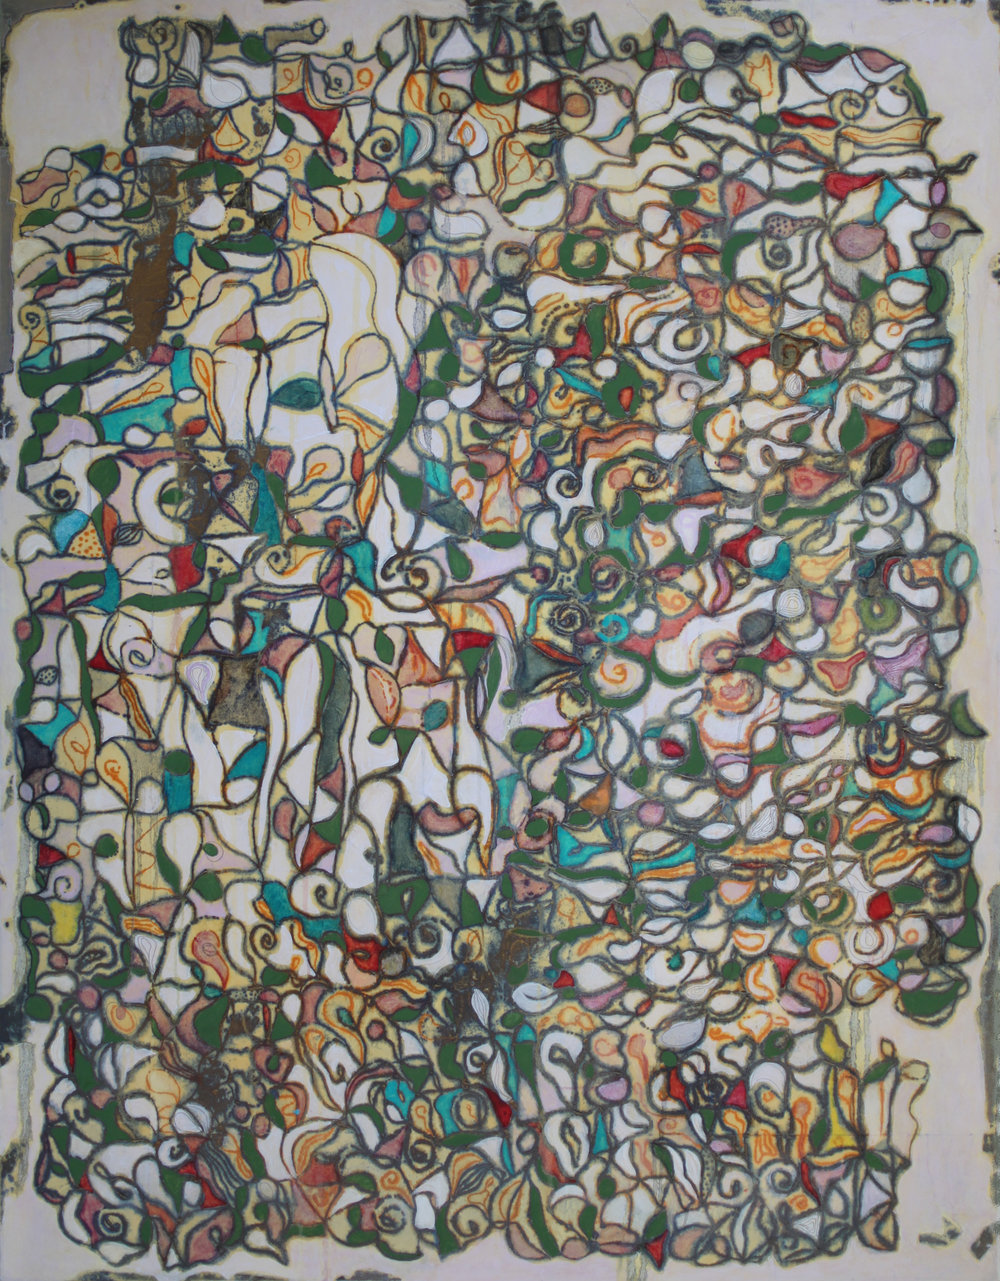 Rhizome 3 45x58 inches, 135x174 cm  oil, gel, rice paper on canvas 2016